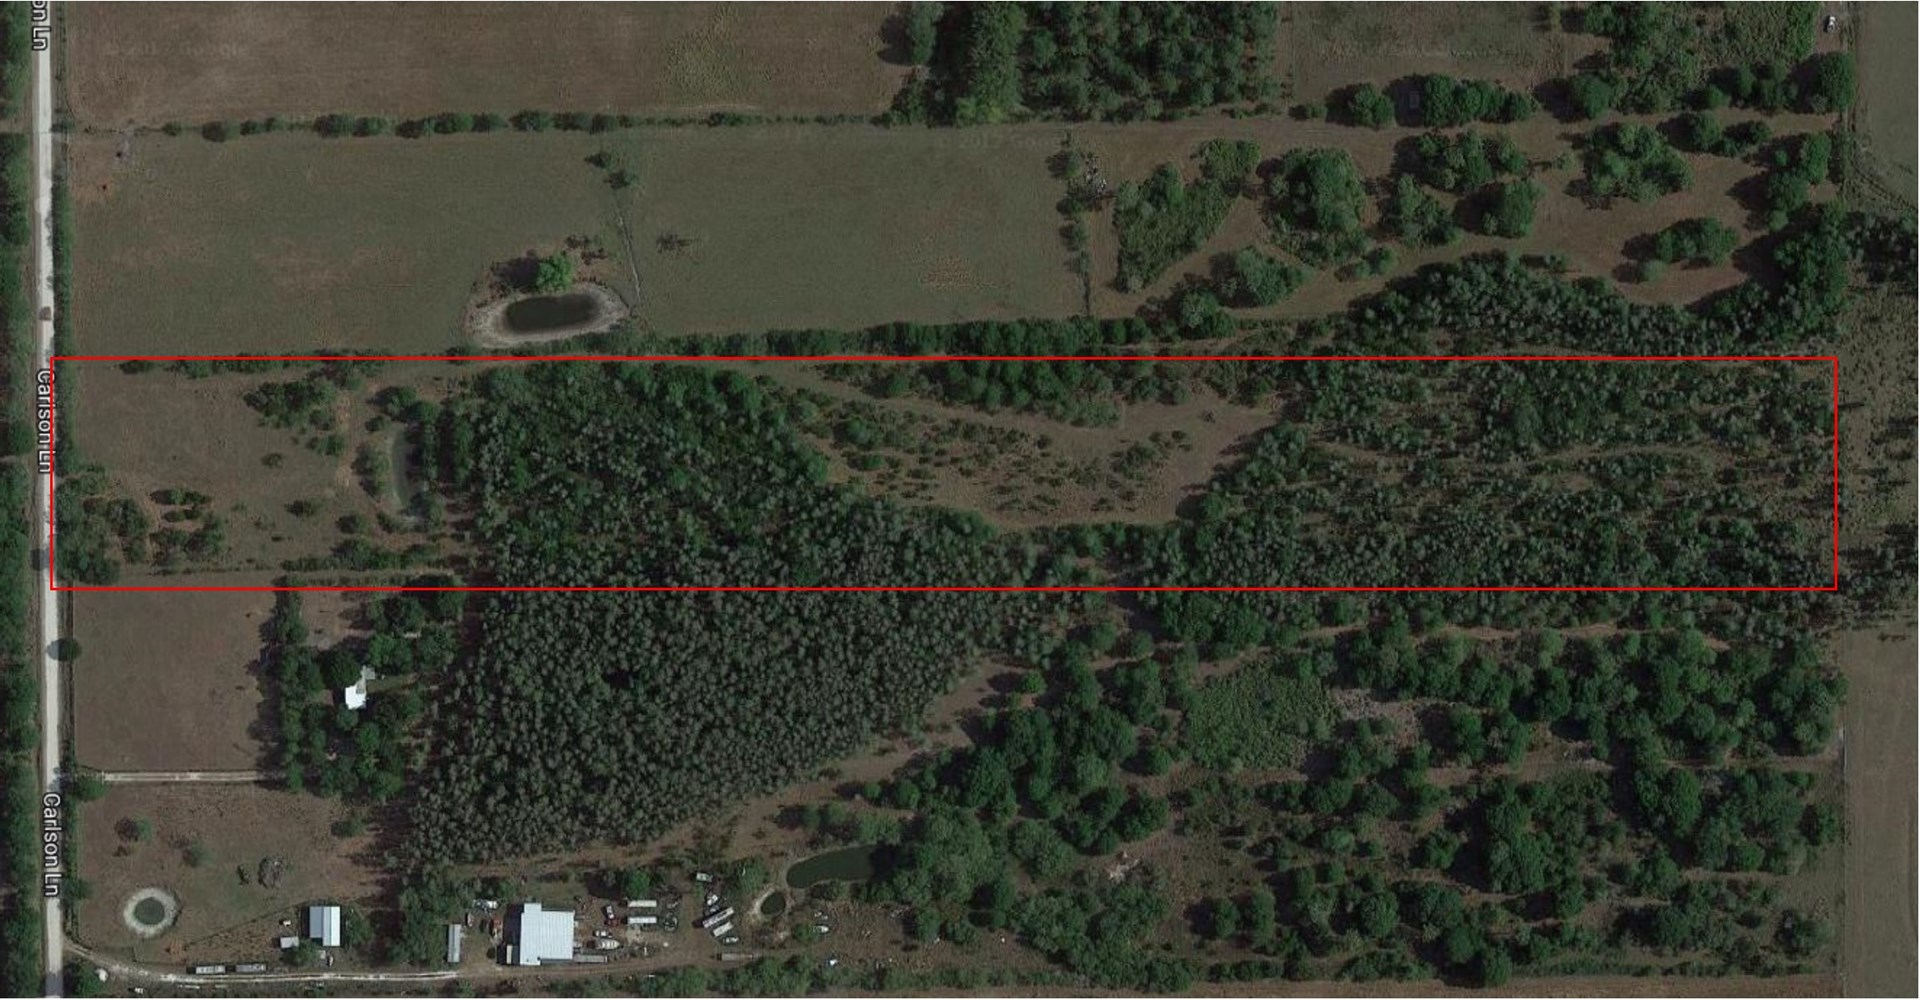 12 Acres For Sale Hardee County, Fl